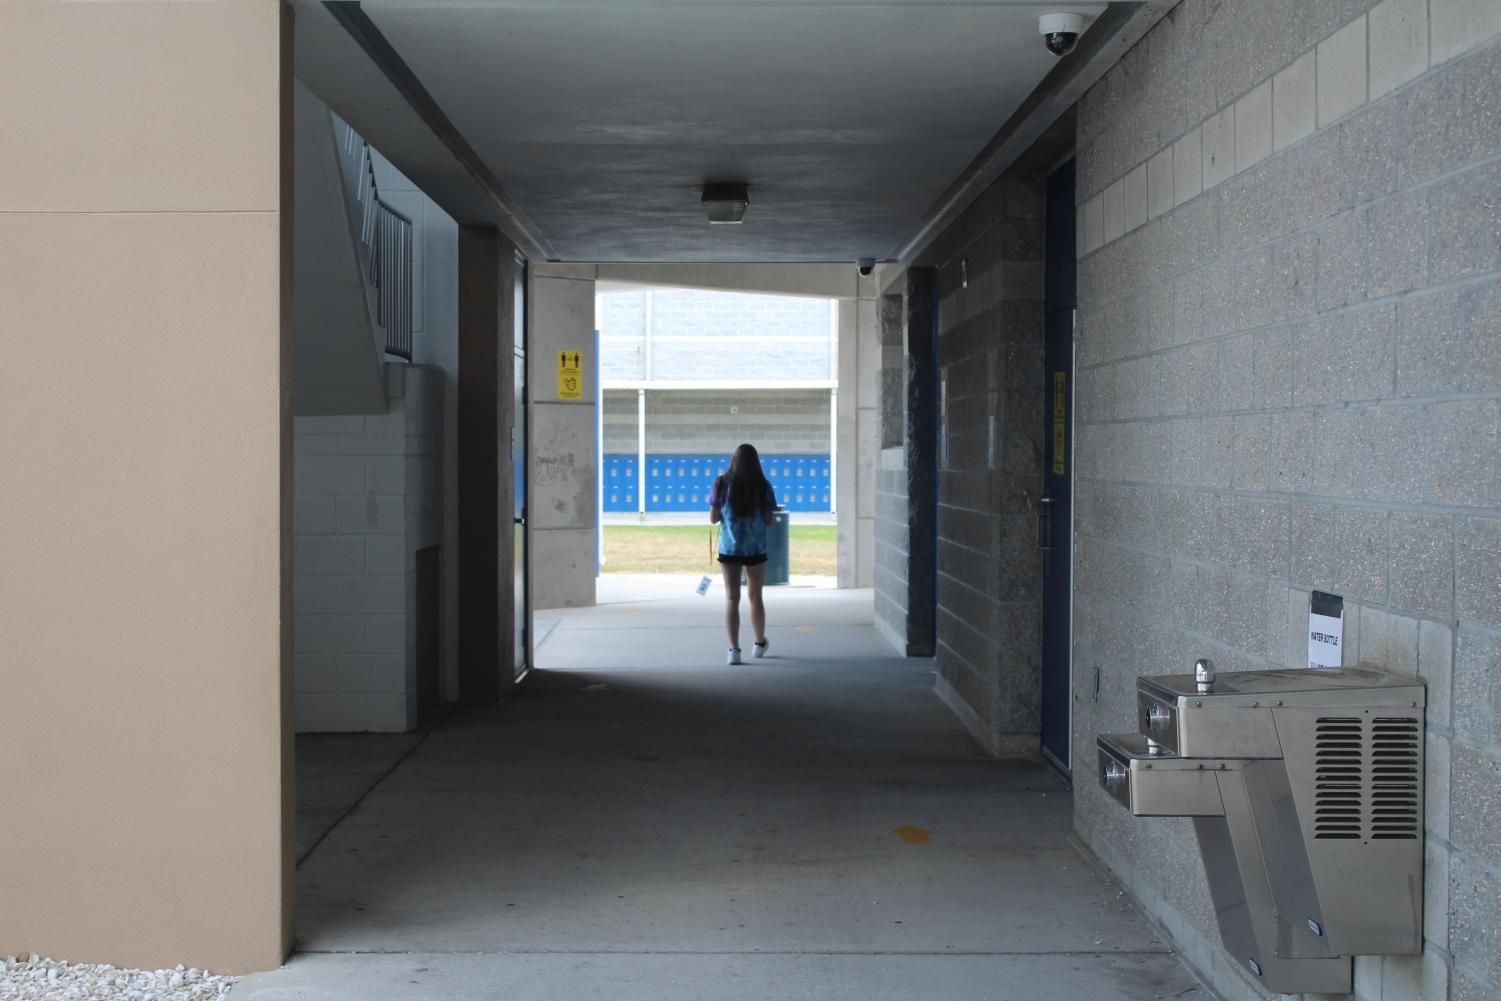 View of the hallway near the ISR room, with a student walking down the hall.